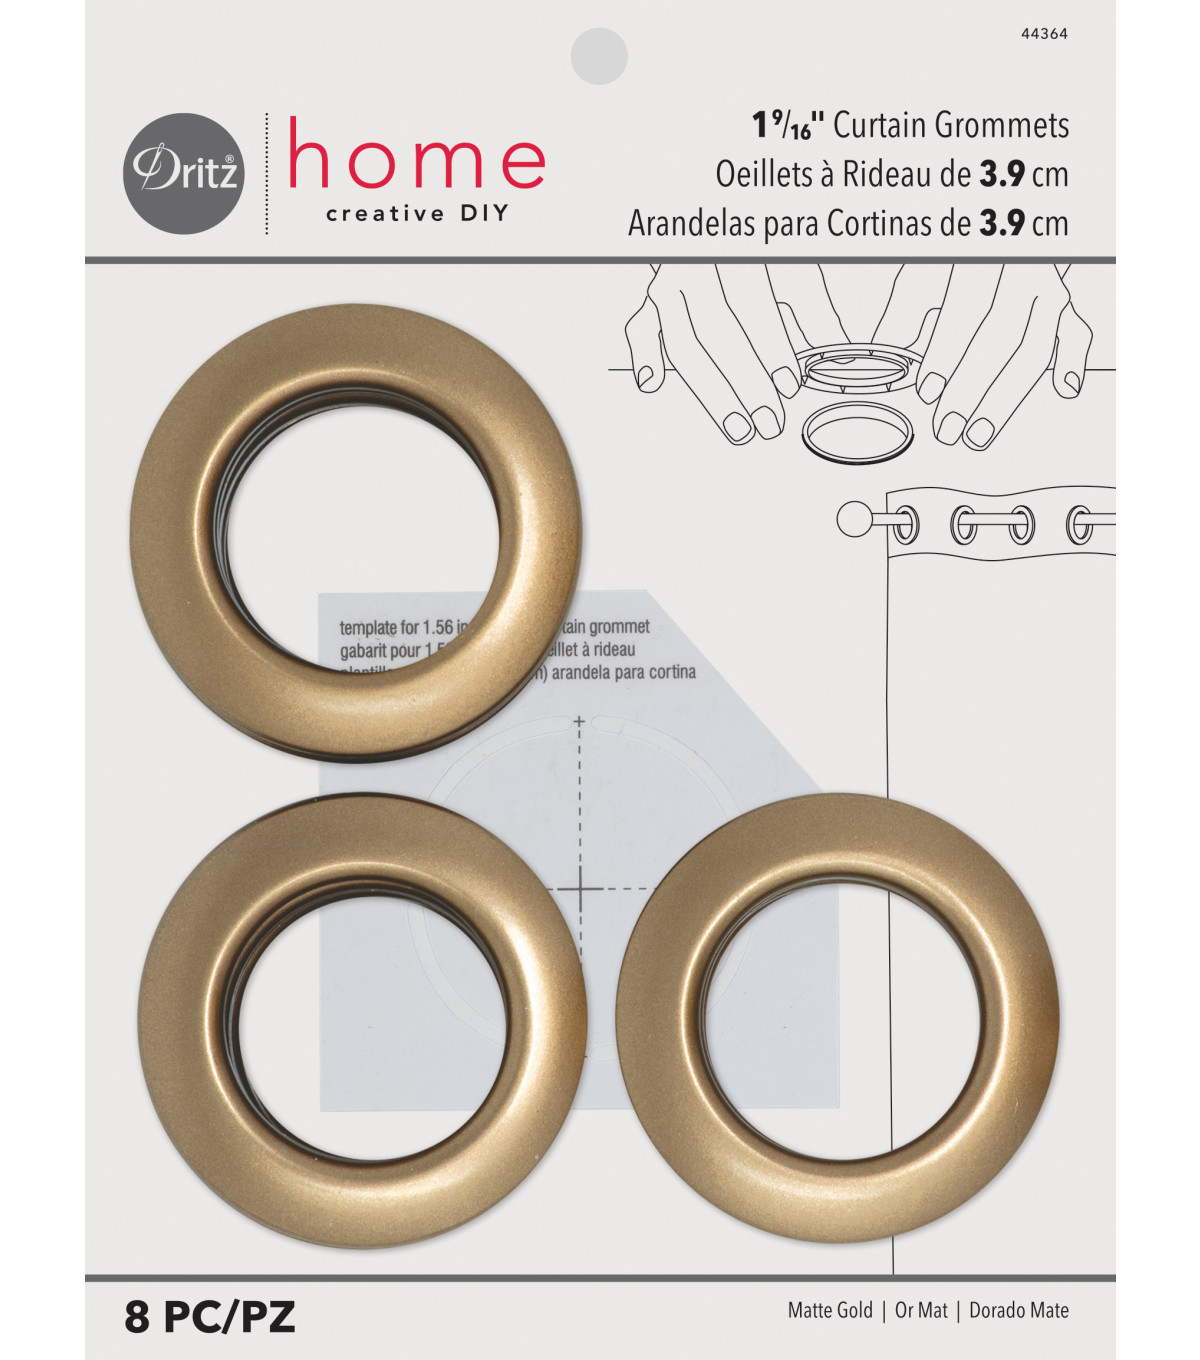 Dritz Home 1.56\u0027\u0027 Curtain Grommets 8pcs Brass, Matte Gold